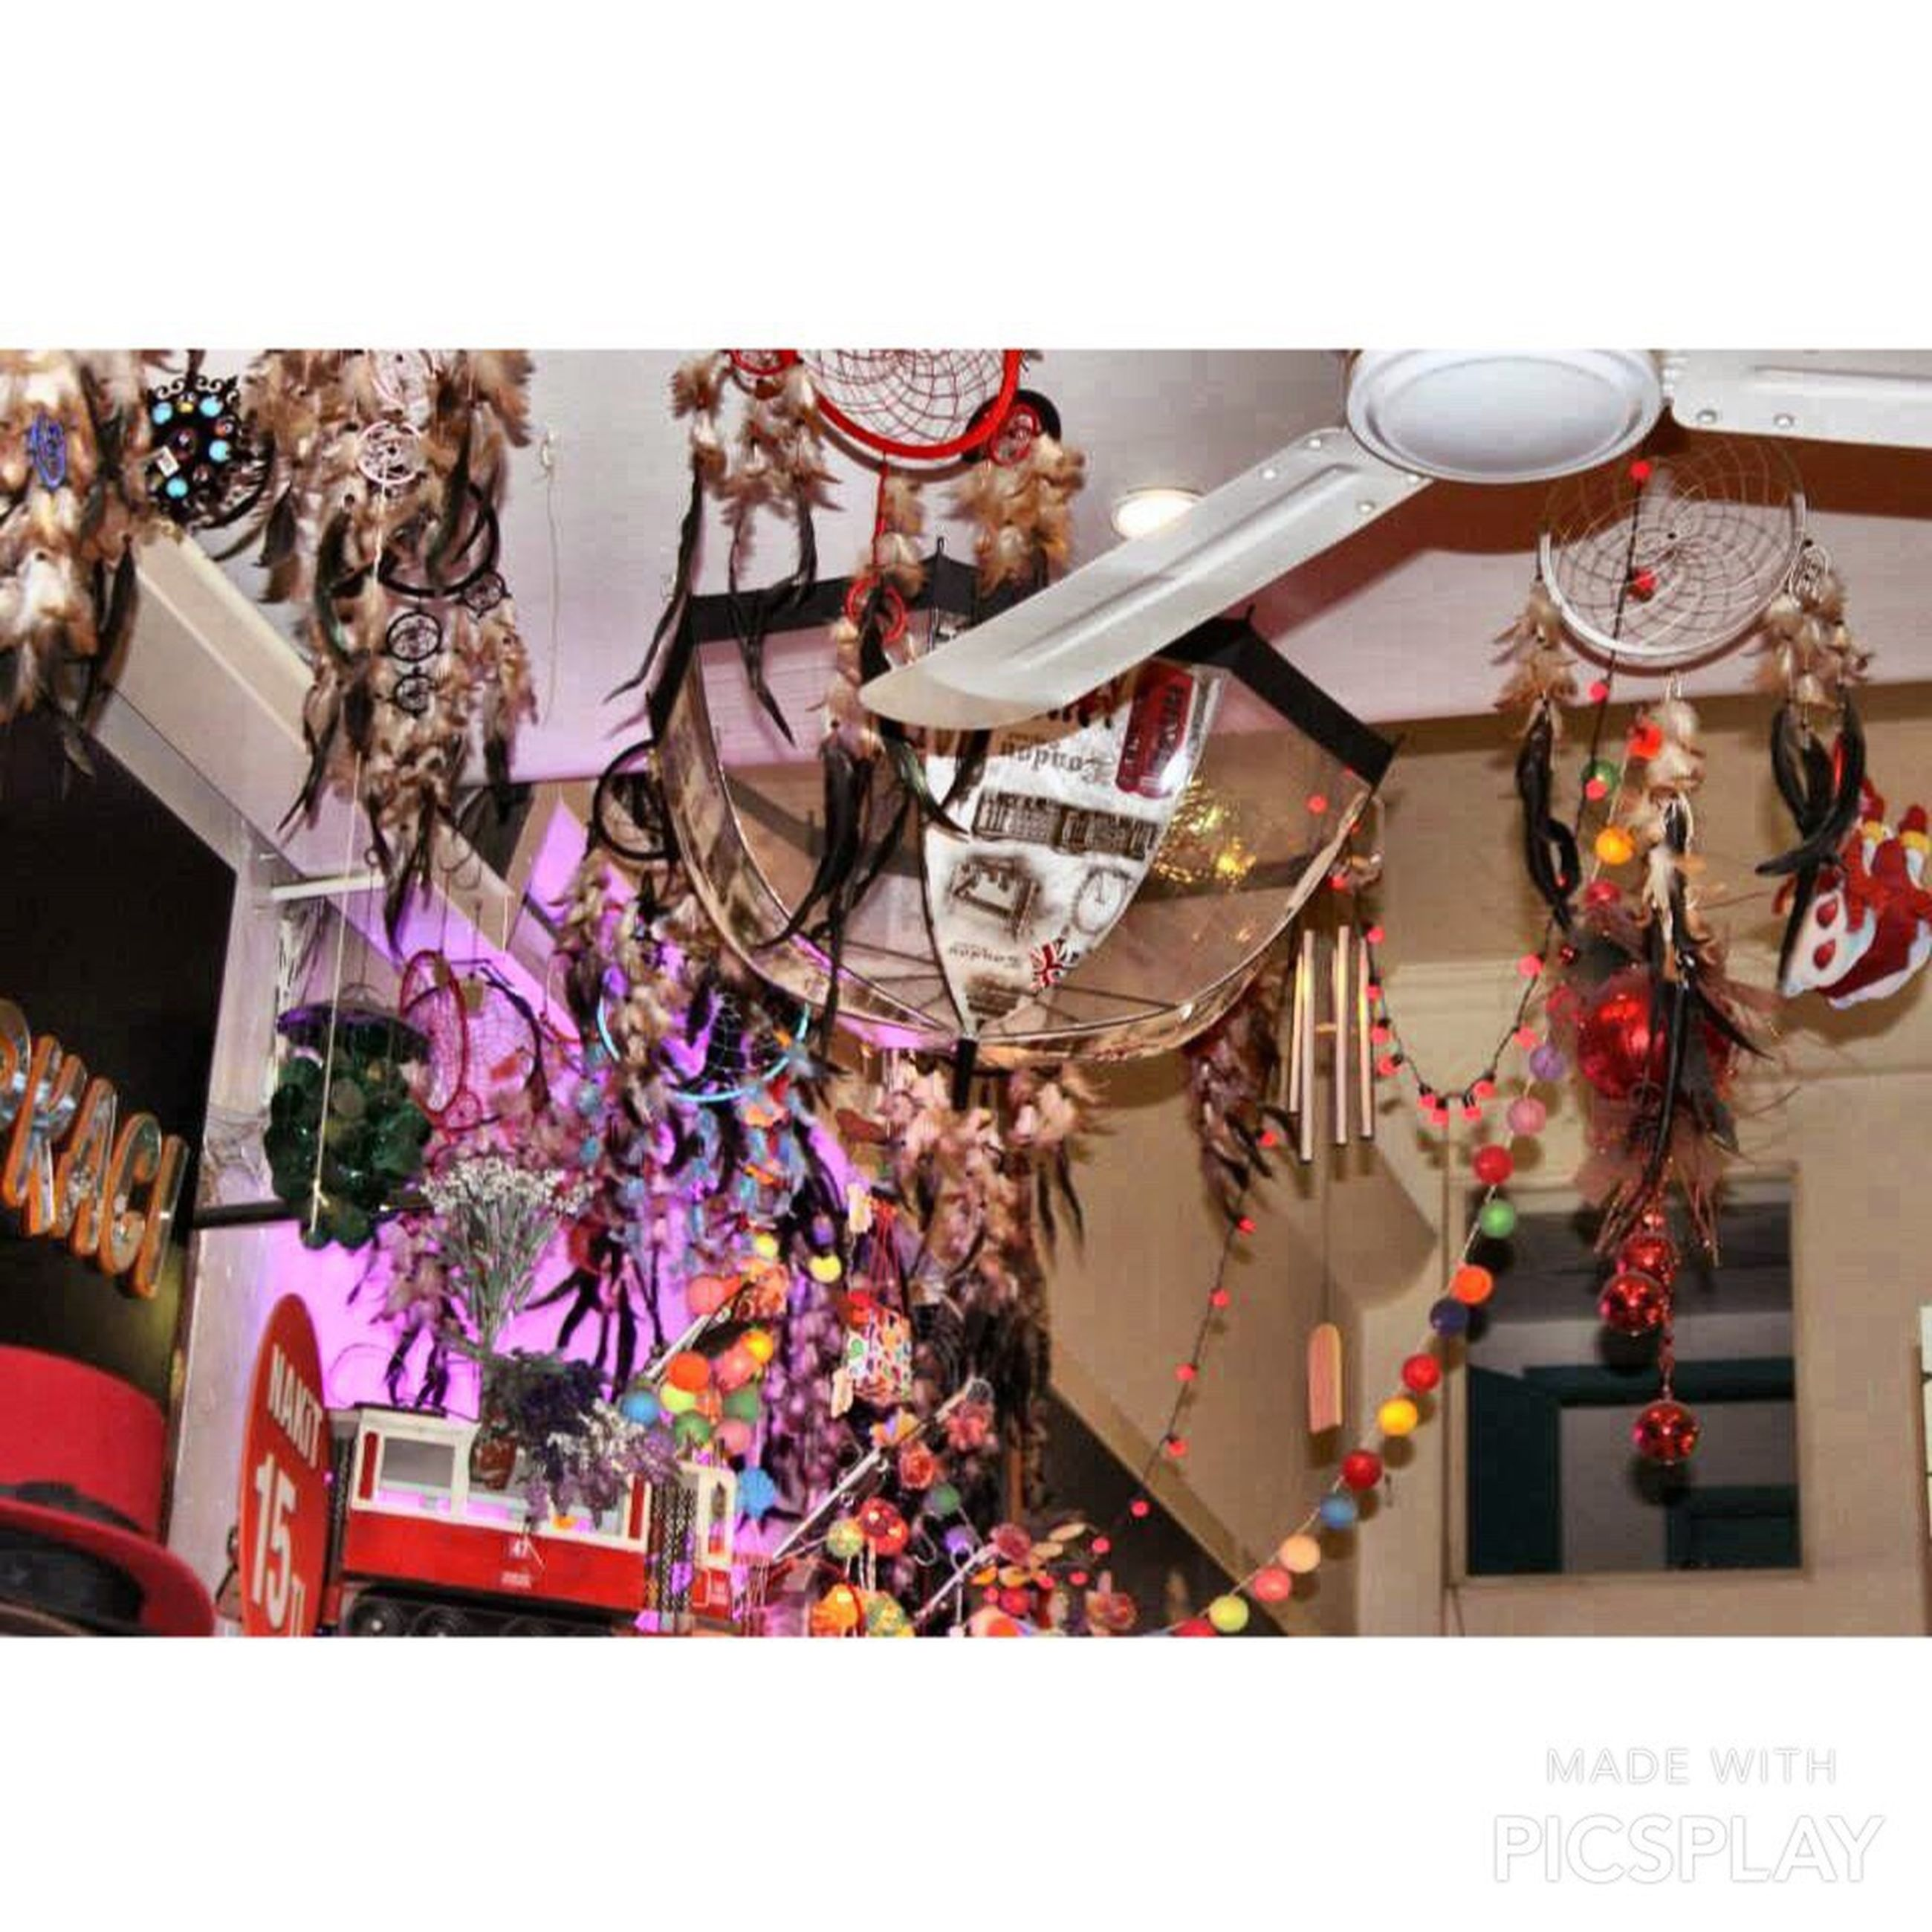 decoration, hanging, variation, indoors, multi colored, art and craft, flower, celebration, choice, built structure, tradition, large group of objects, abundance, architecture, retail, cultures, art, creativity, low angle view, arrangement